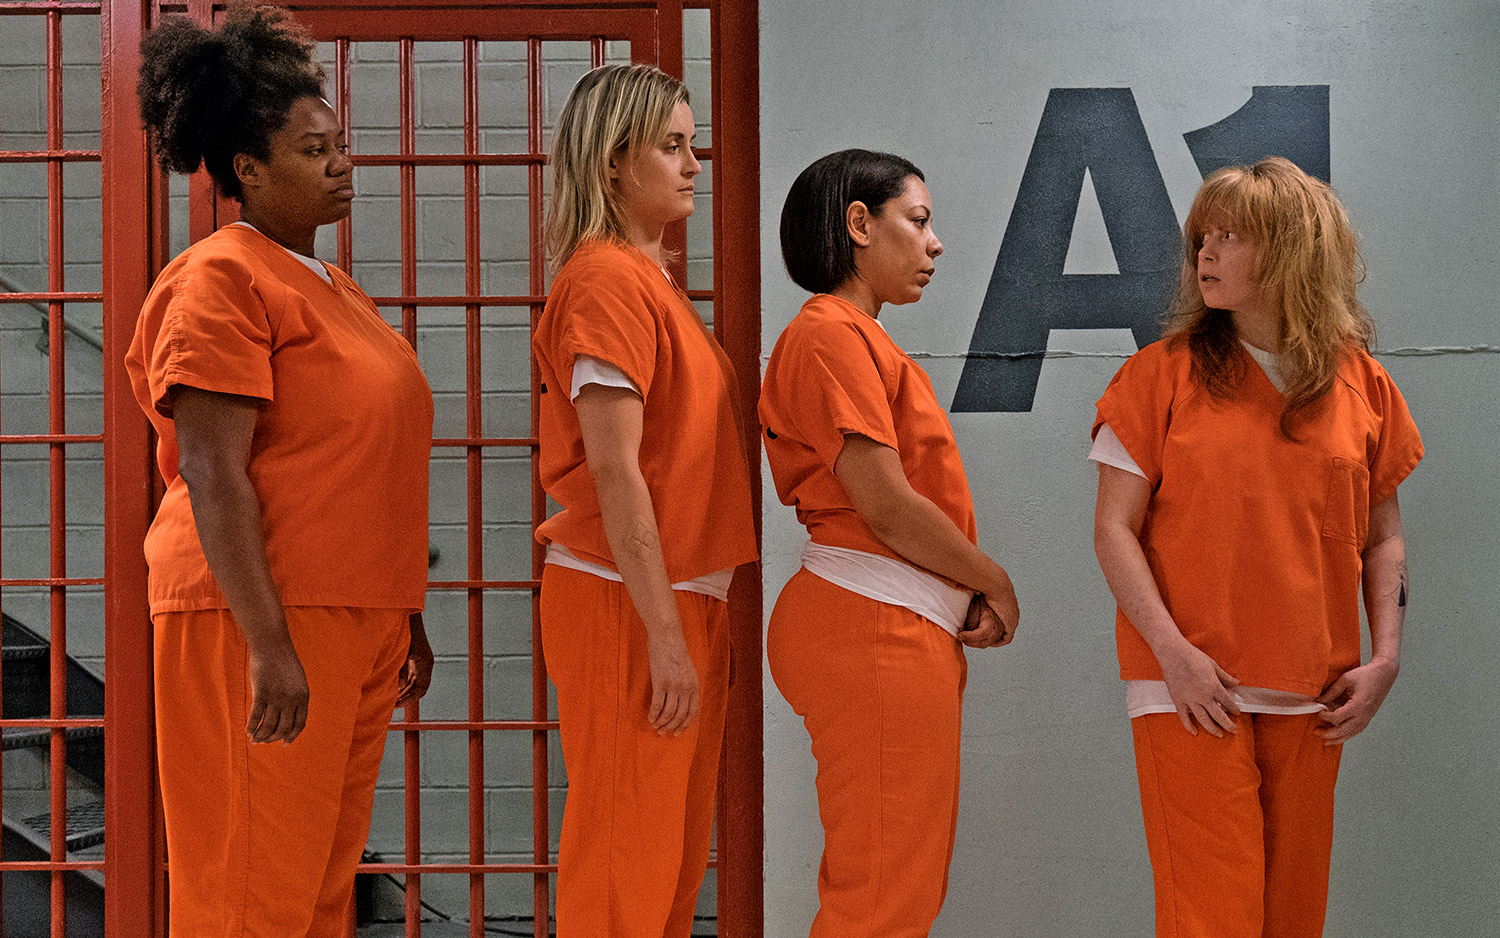 11 Shows To Watch After Orange Is the New Black | Tom's Guide